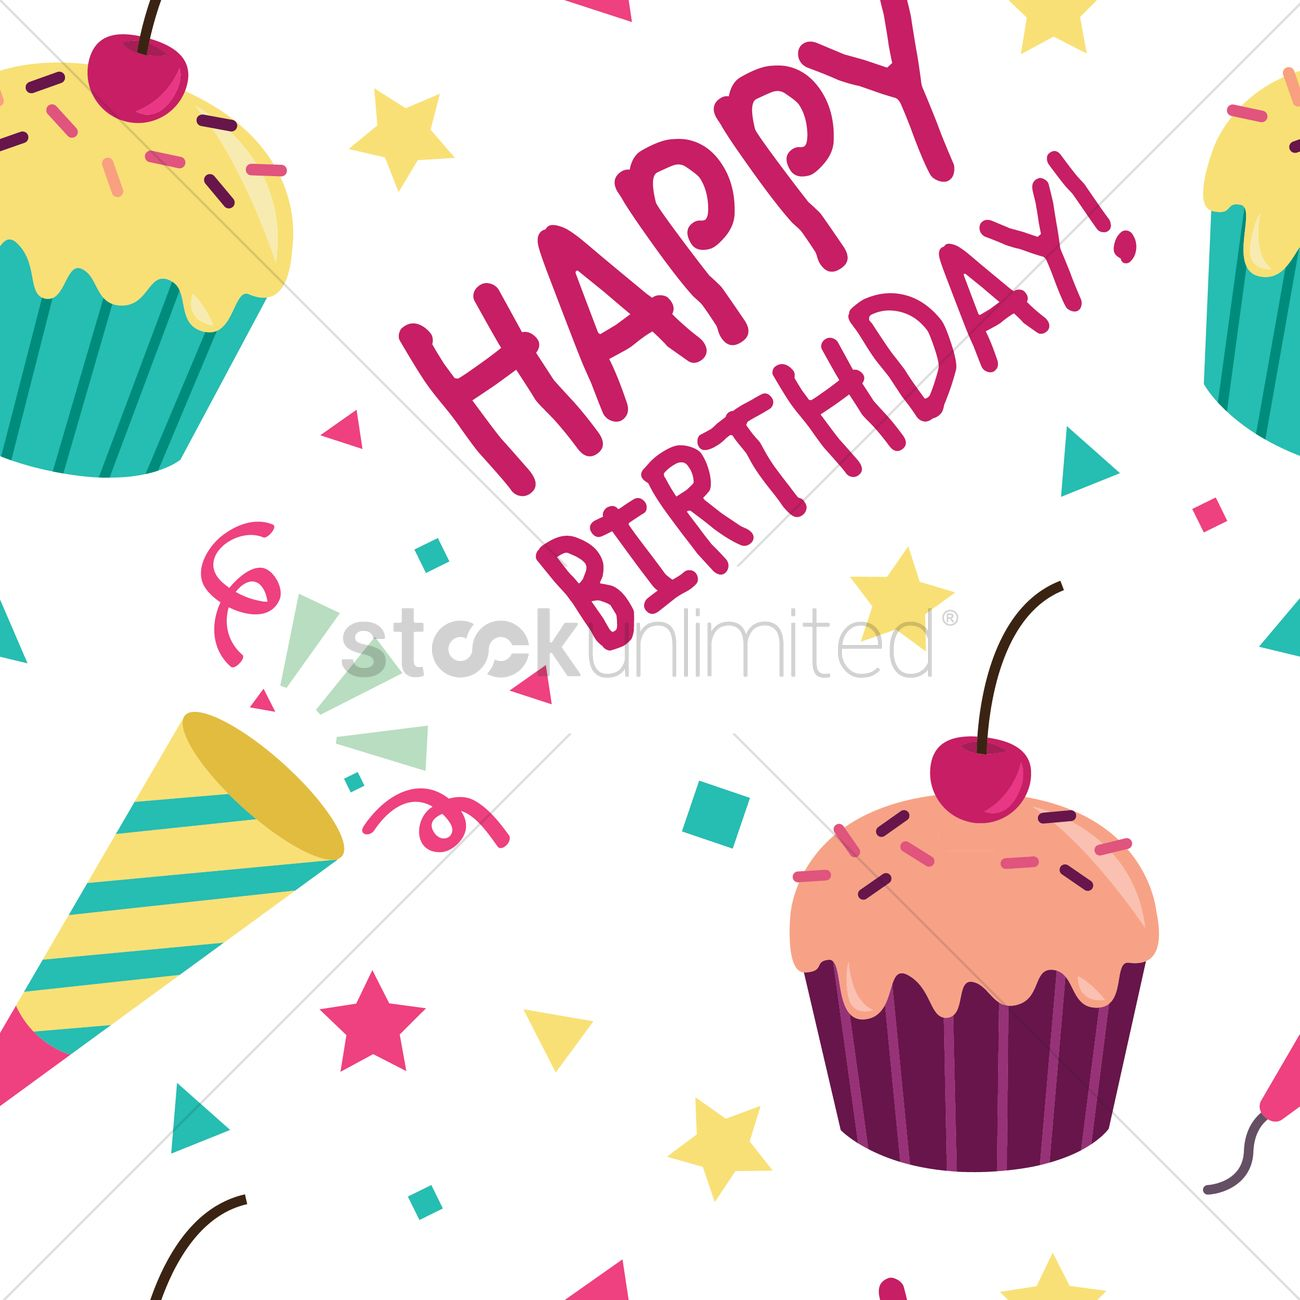 Seamless birthday design Vector Image - 1309799 | StockUnlimited